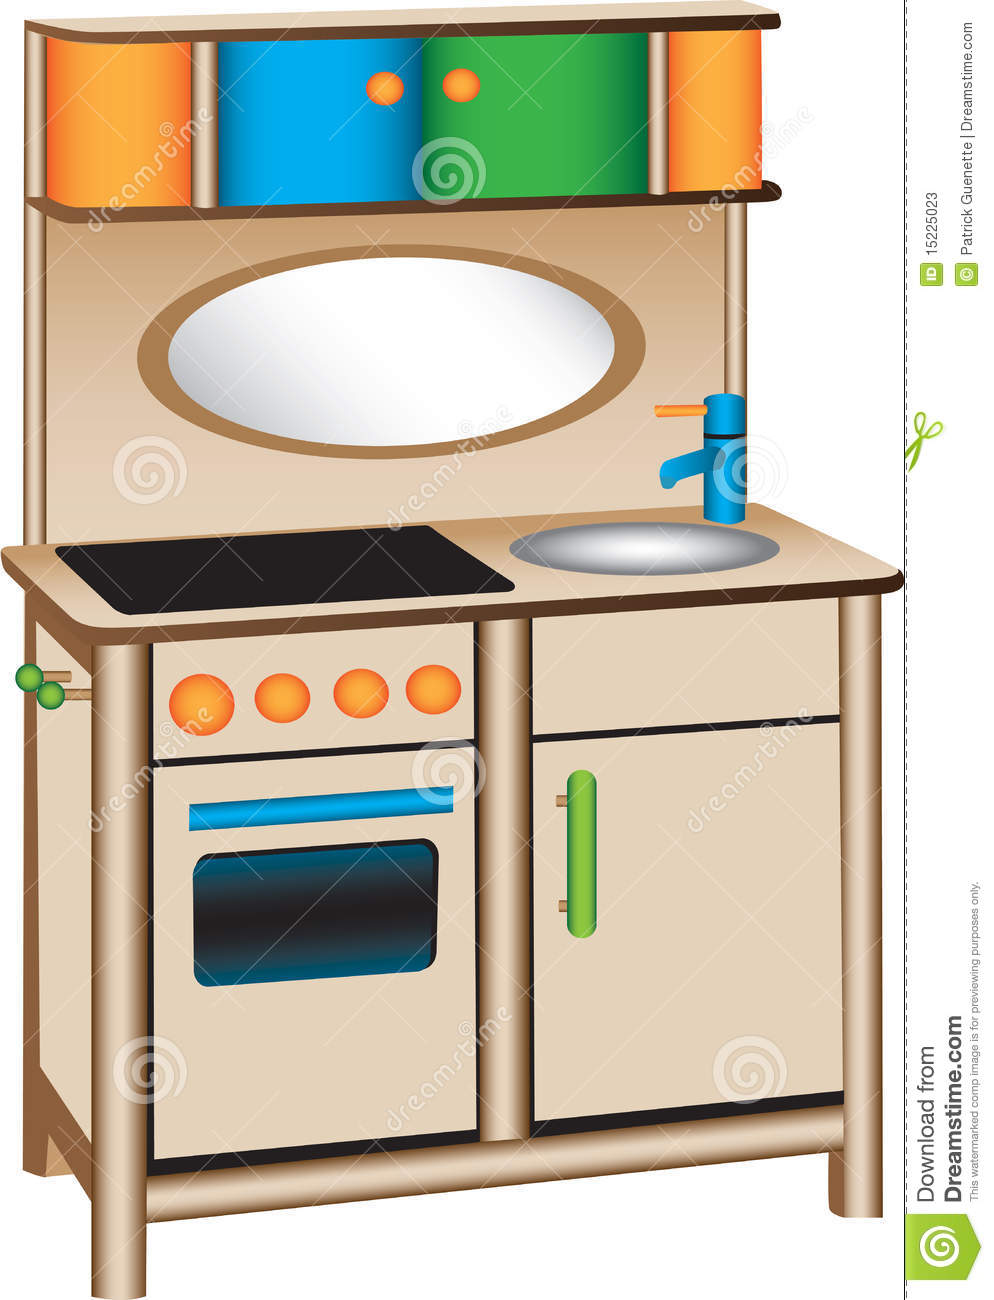 994x1300 The Kitchen Clipart Kitchen Stove